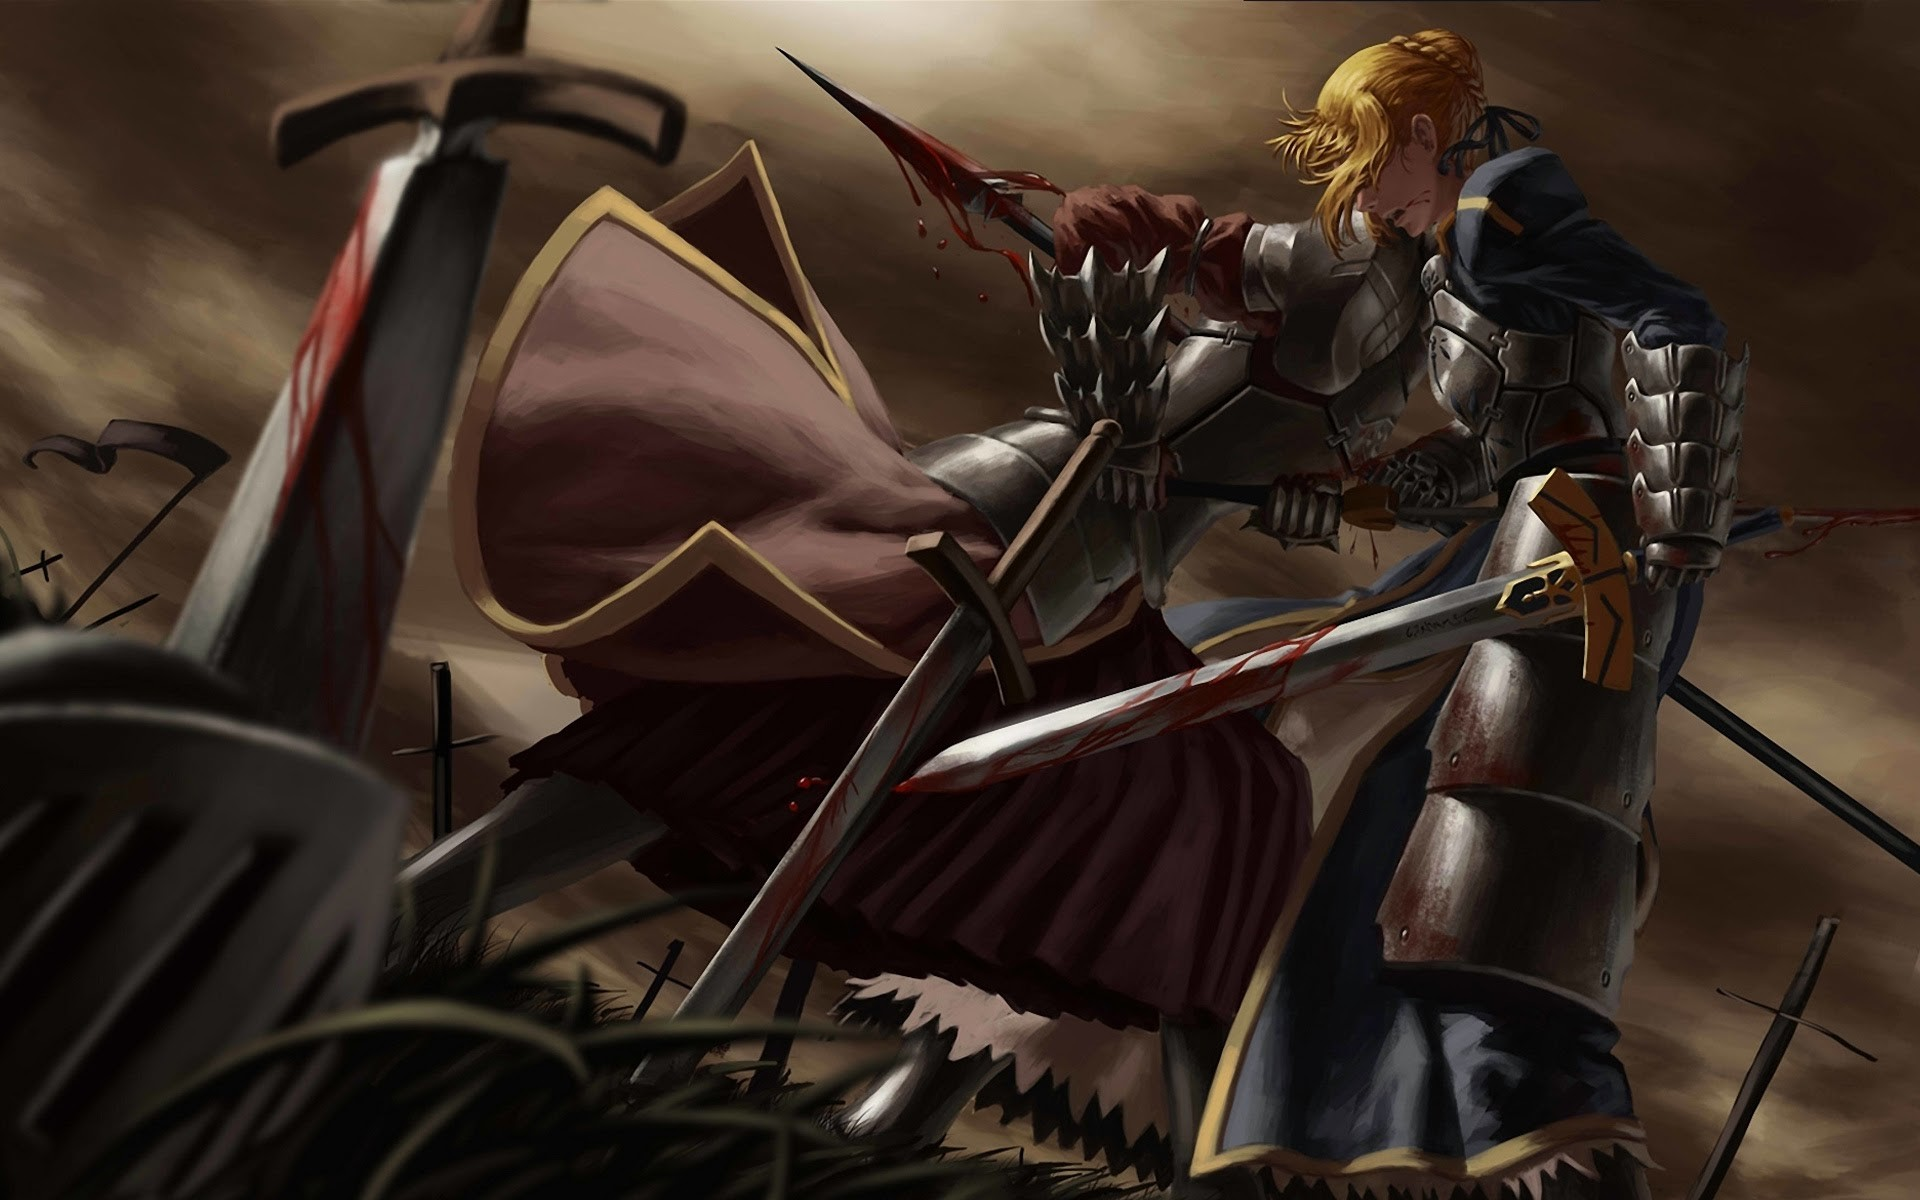 saber fighting fate stay night wallpaper anime blonde armor girl sword .